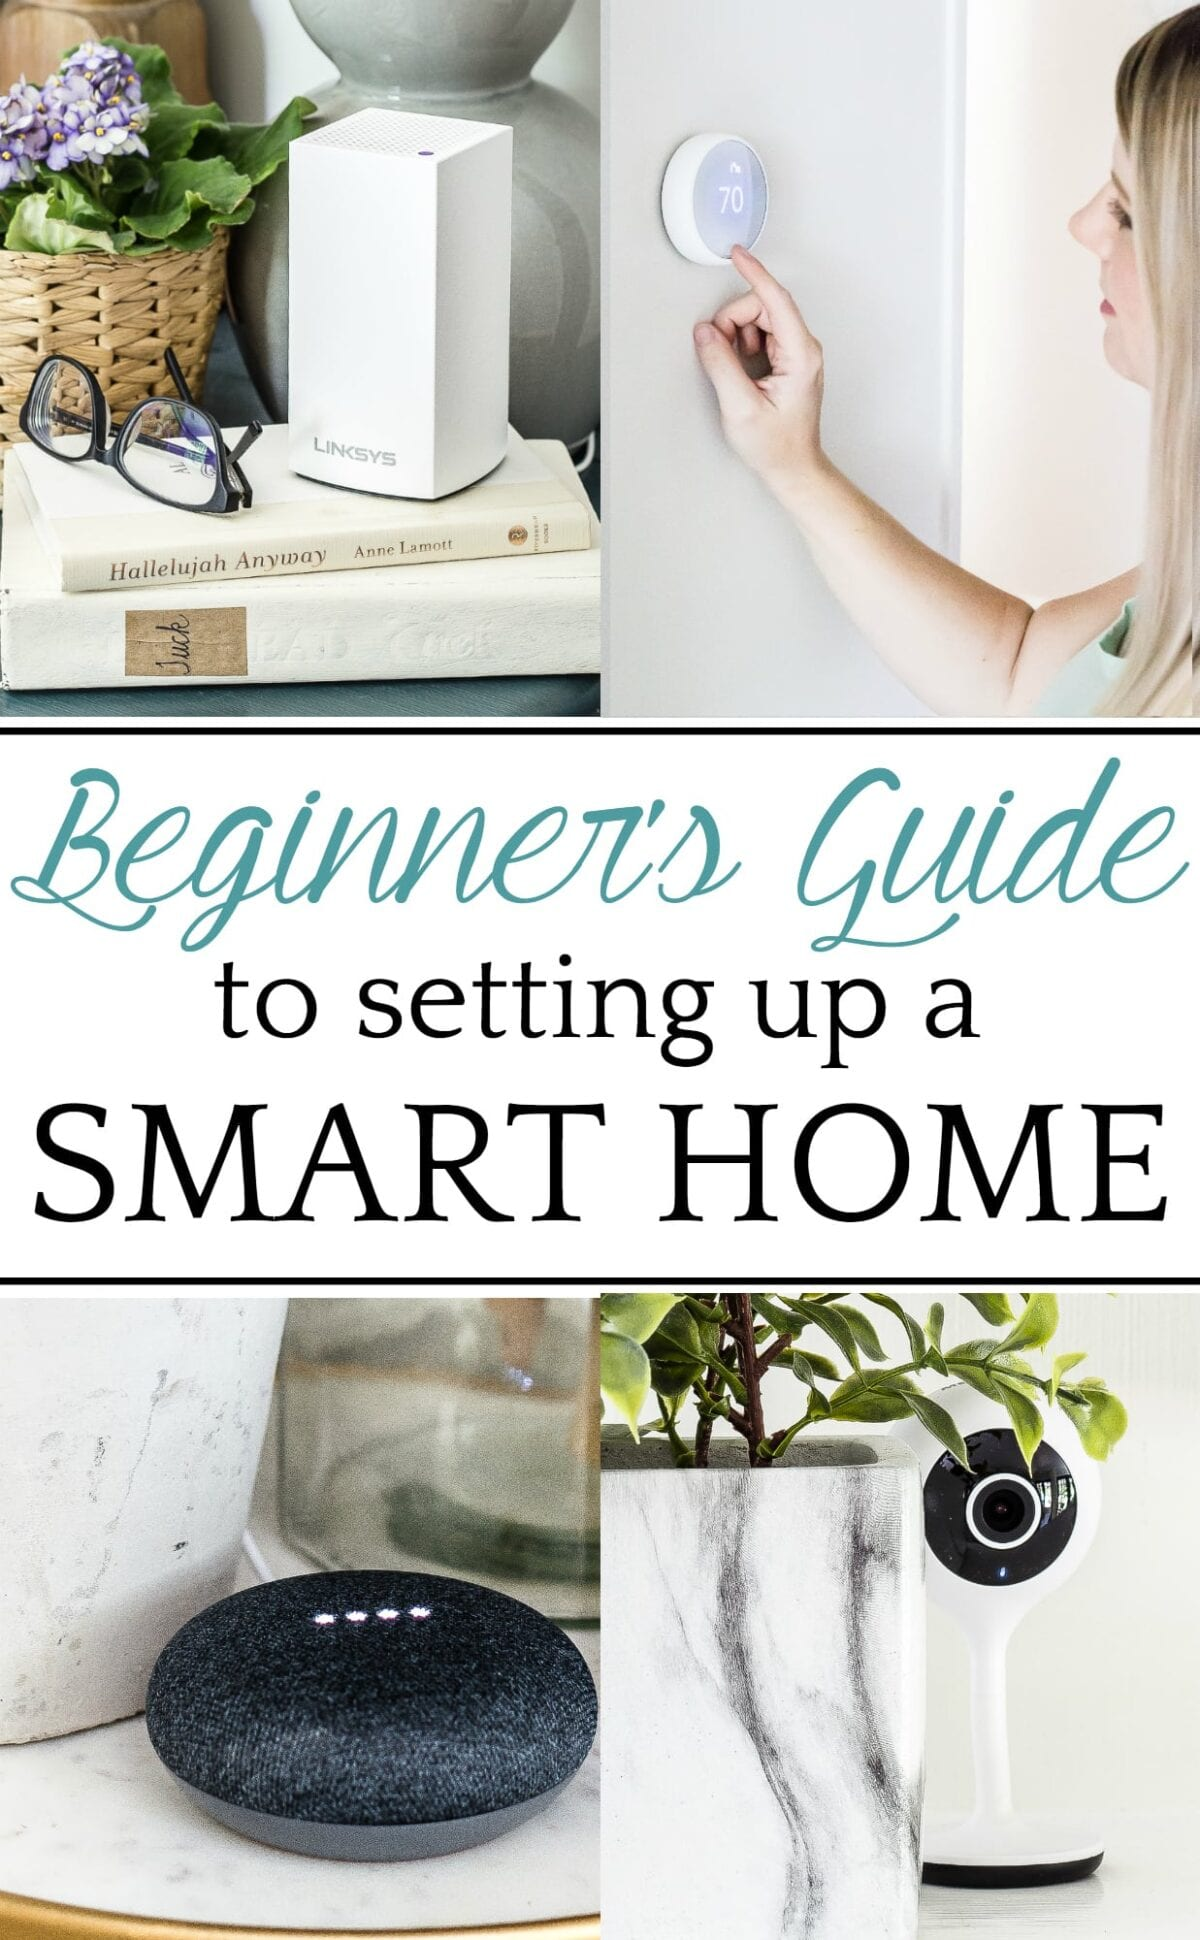 The beginner's guide to setting up a smart home in 6 steps and how to pull it off for under $500.